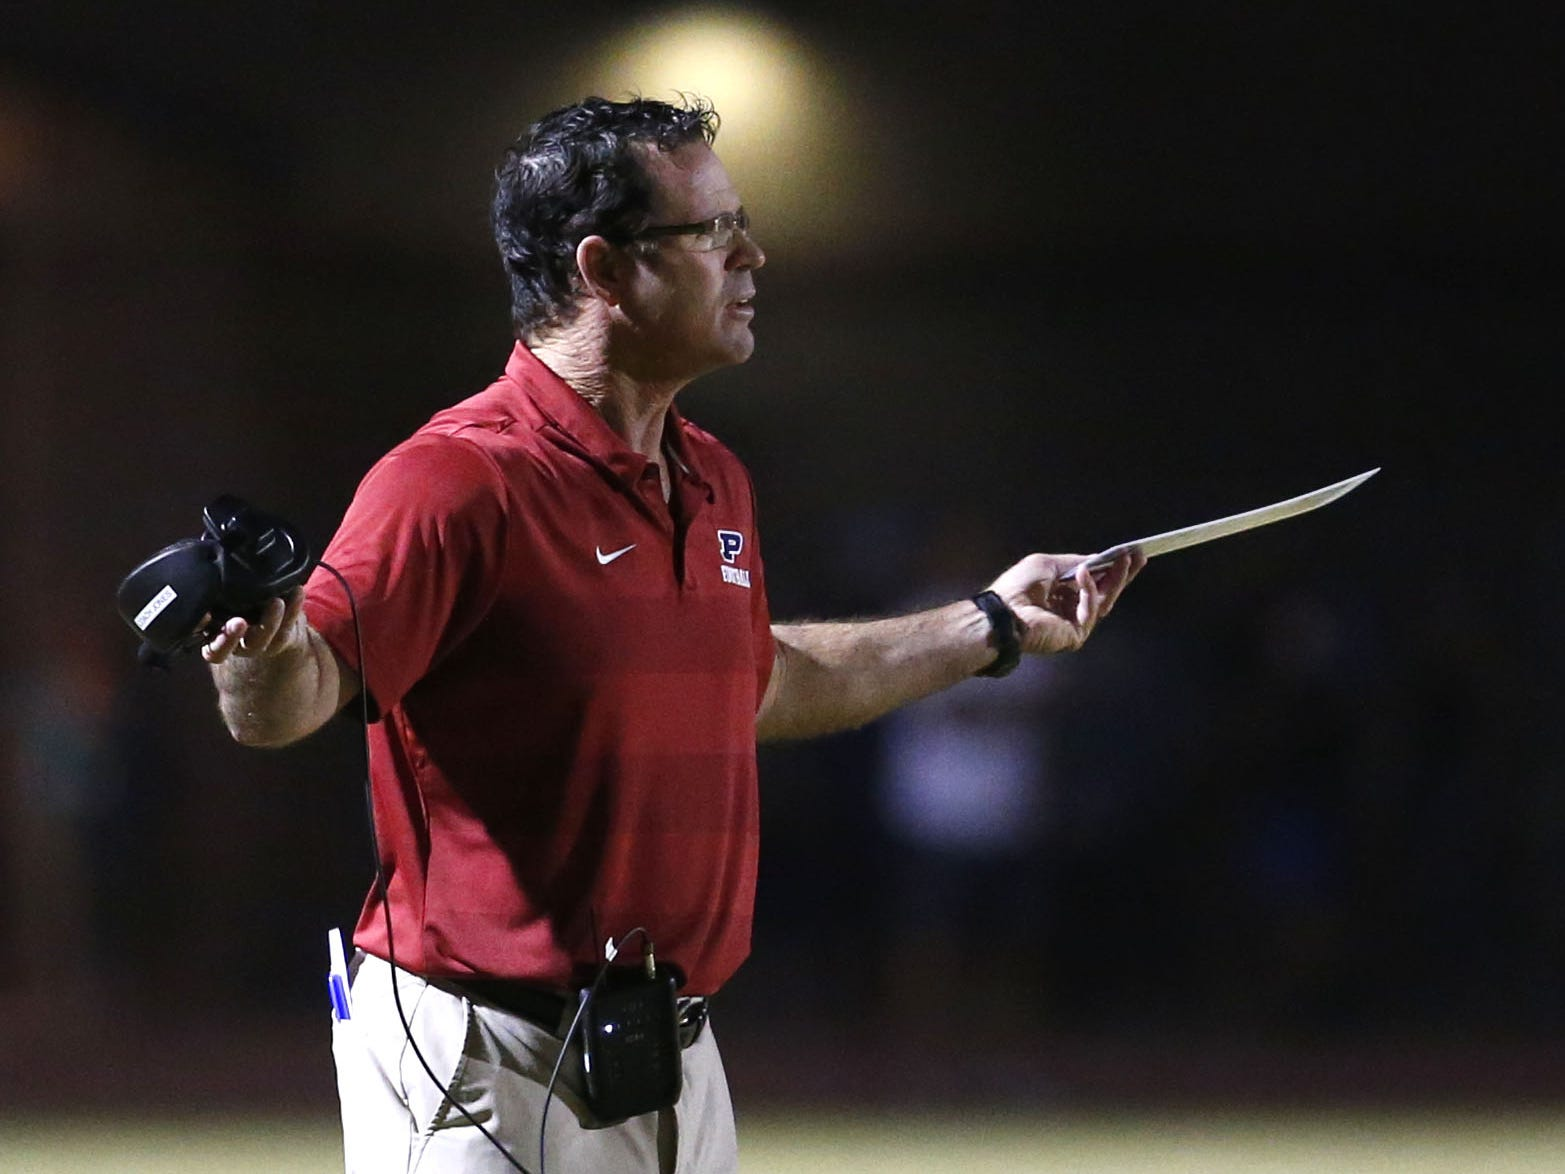 Perry head coach Preston Jones reacts on the sidelines during a football game against Basha at Perry High School on November 2. #azhsfb